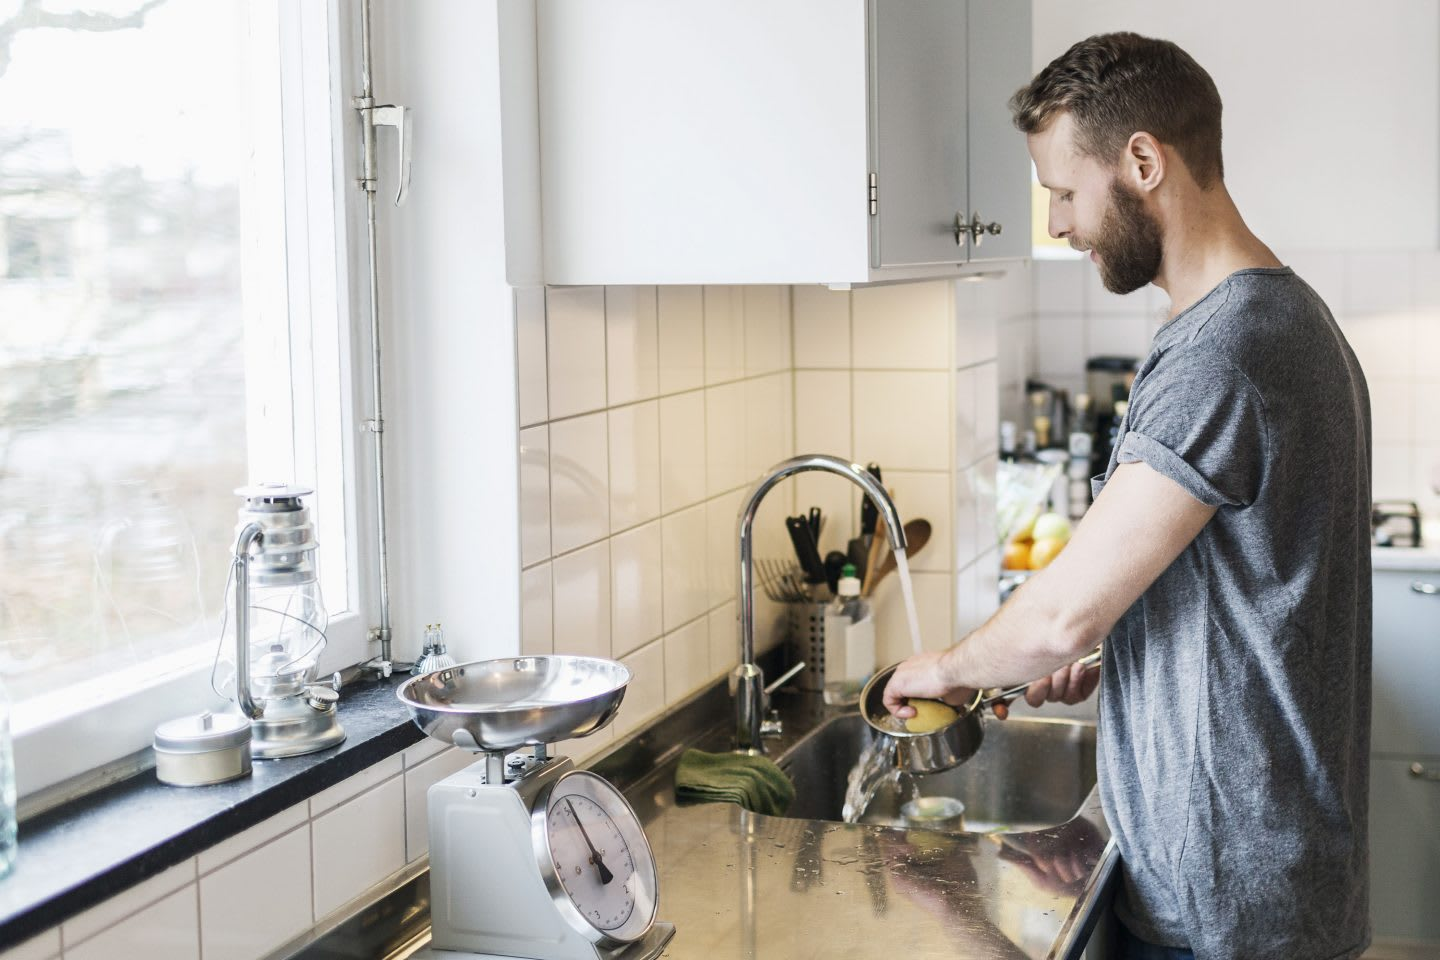 Man washing sauce pan while woman standing in background in kitchen while letting his mind wander. GamePlanA